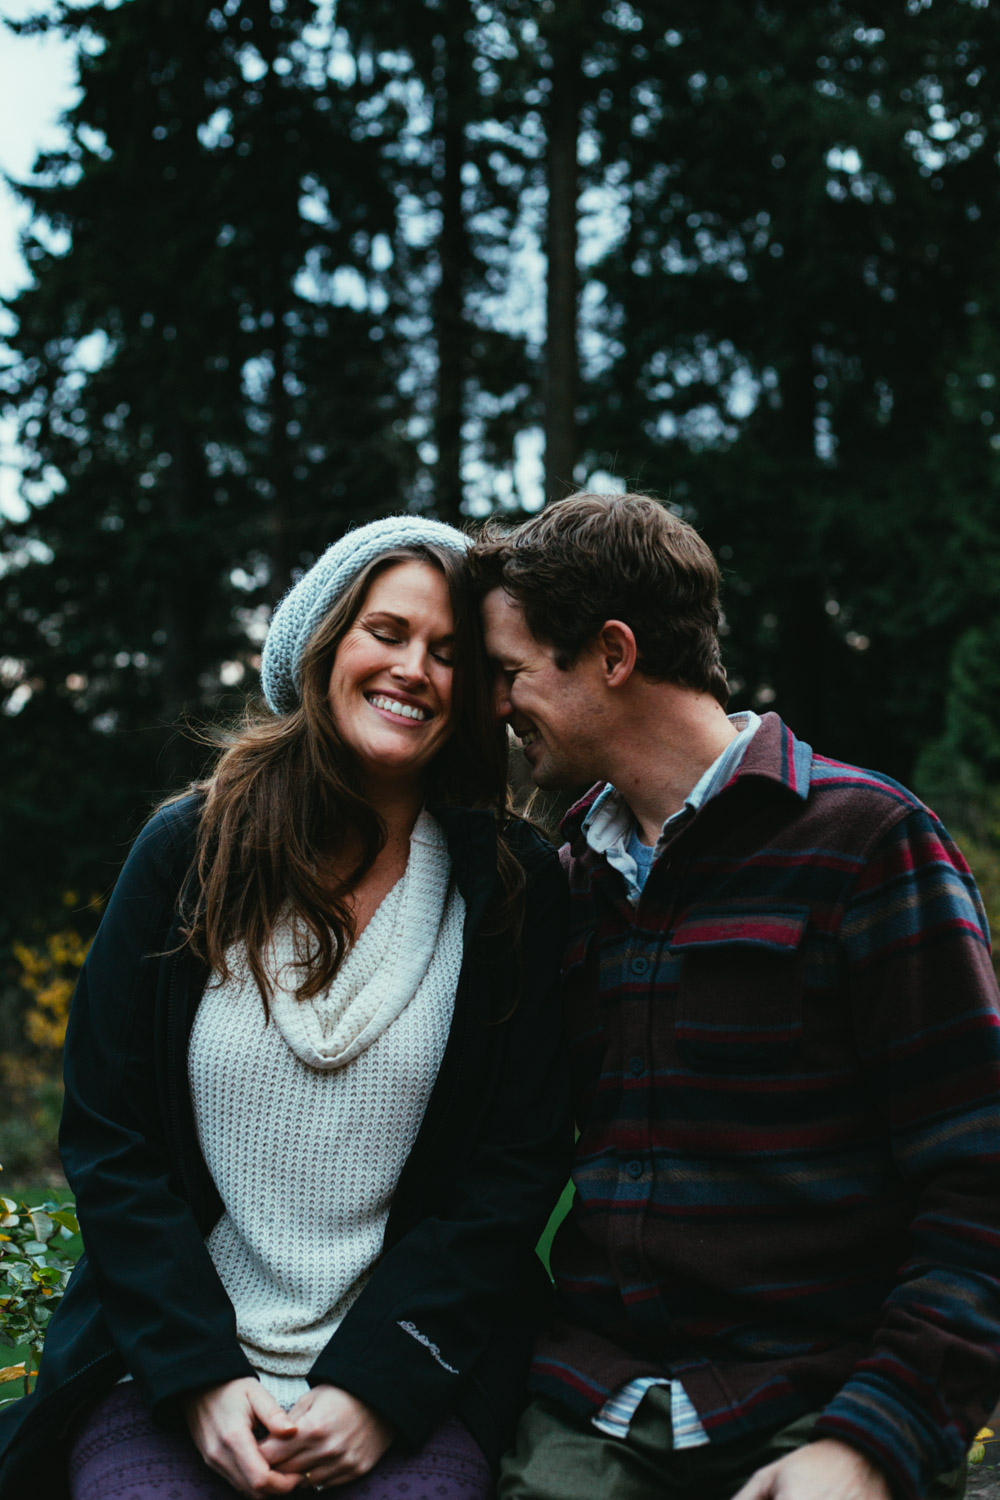 engagement photography portland rose garden-5.jpg